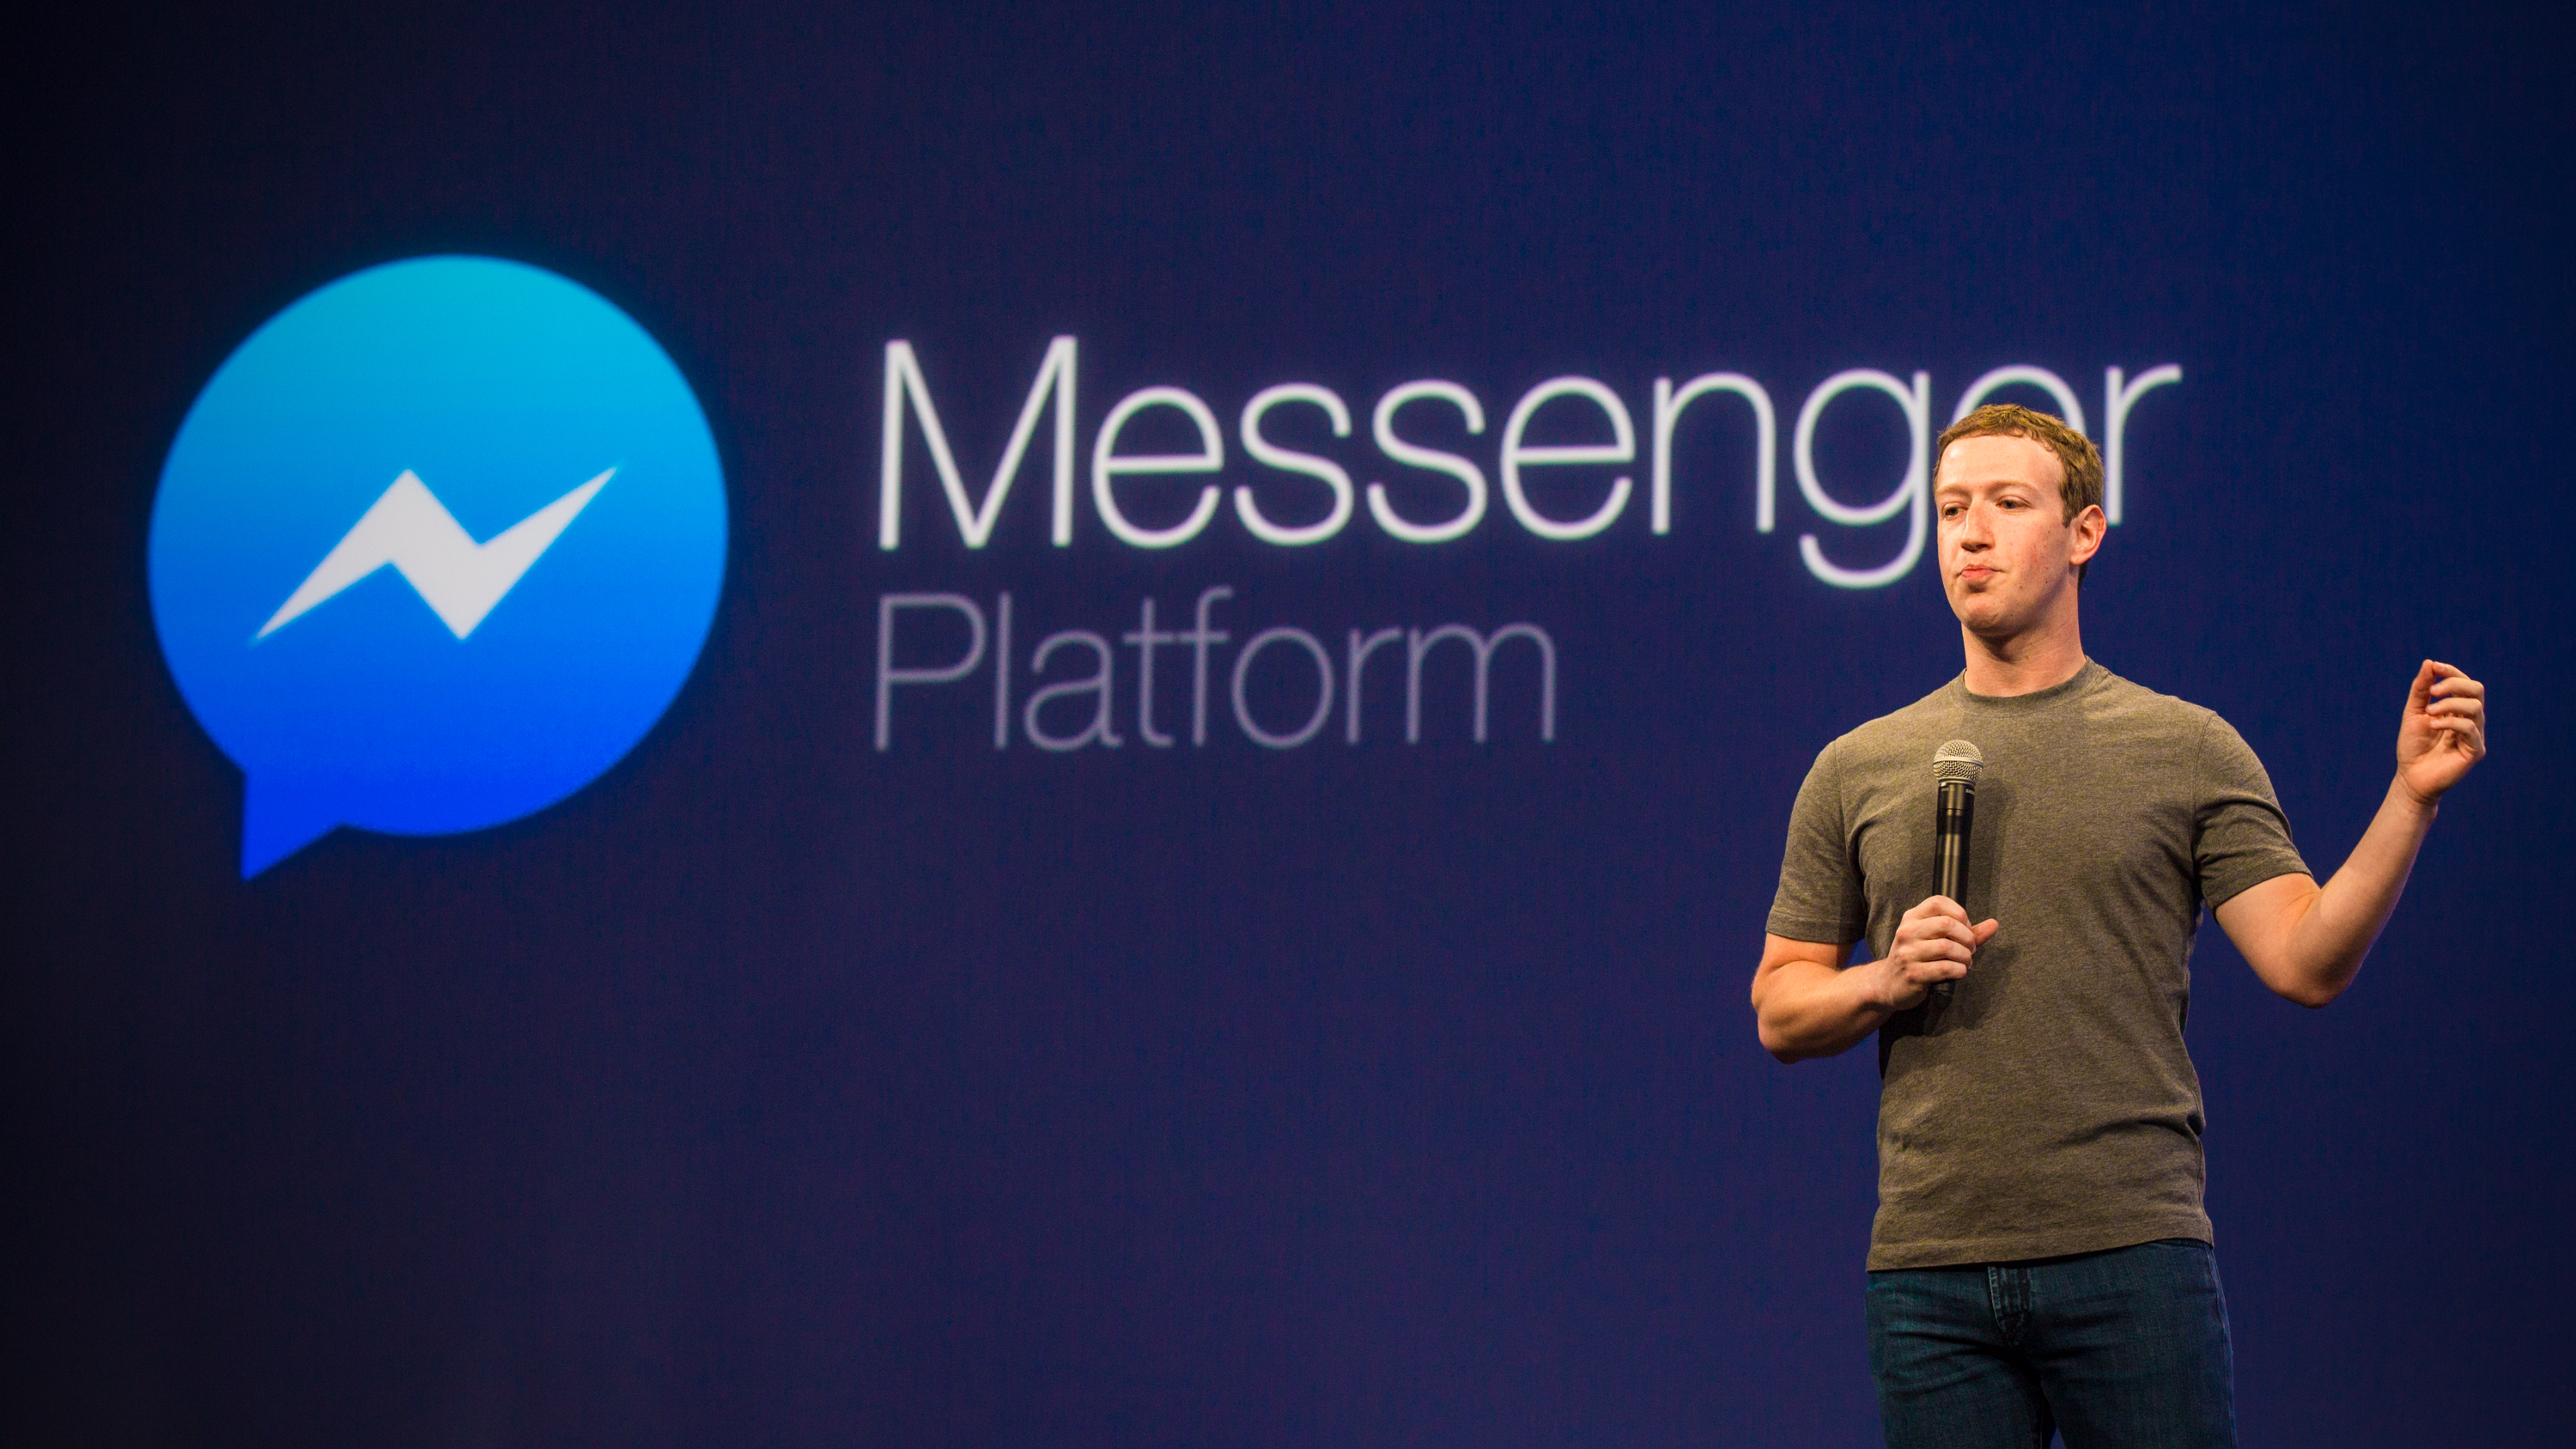 facebook-f8-2015-messenger-platform-mark-zuckerberg.jpg